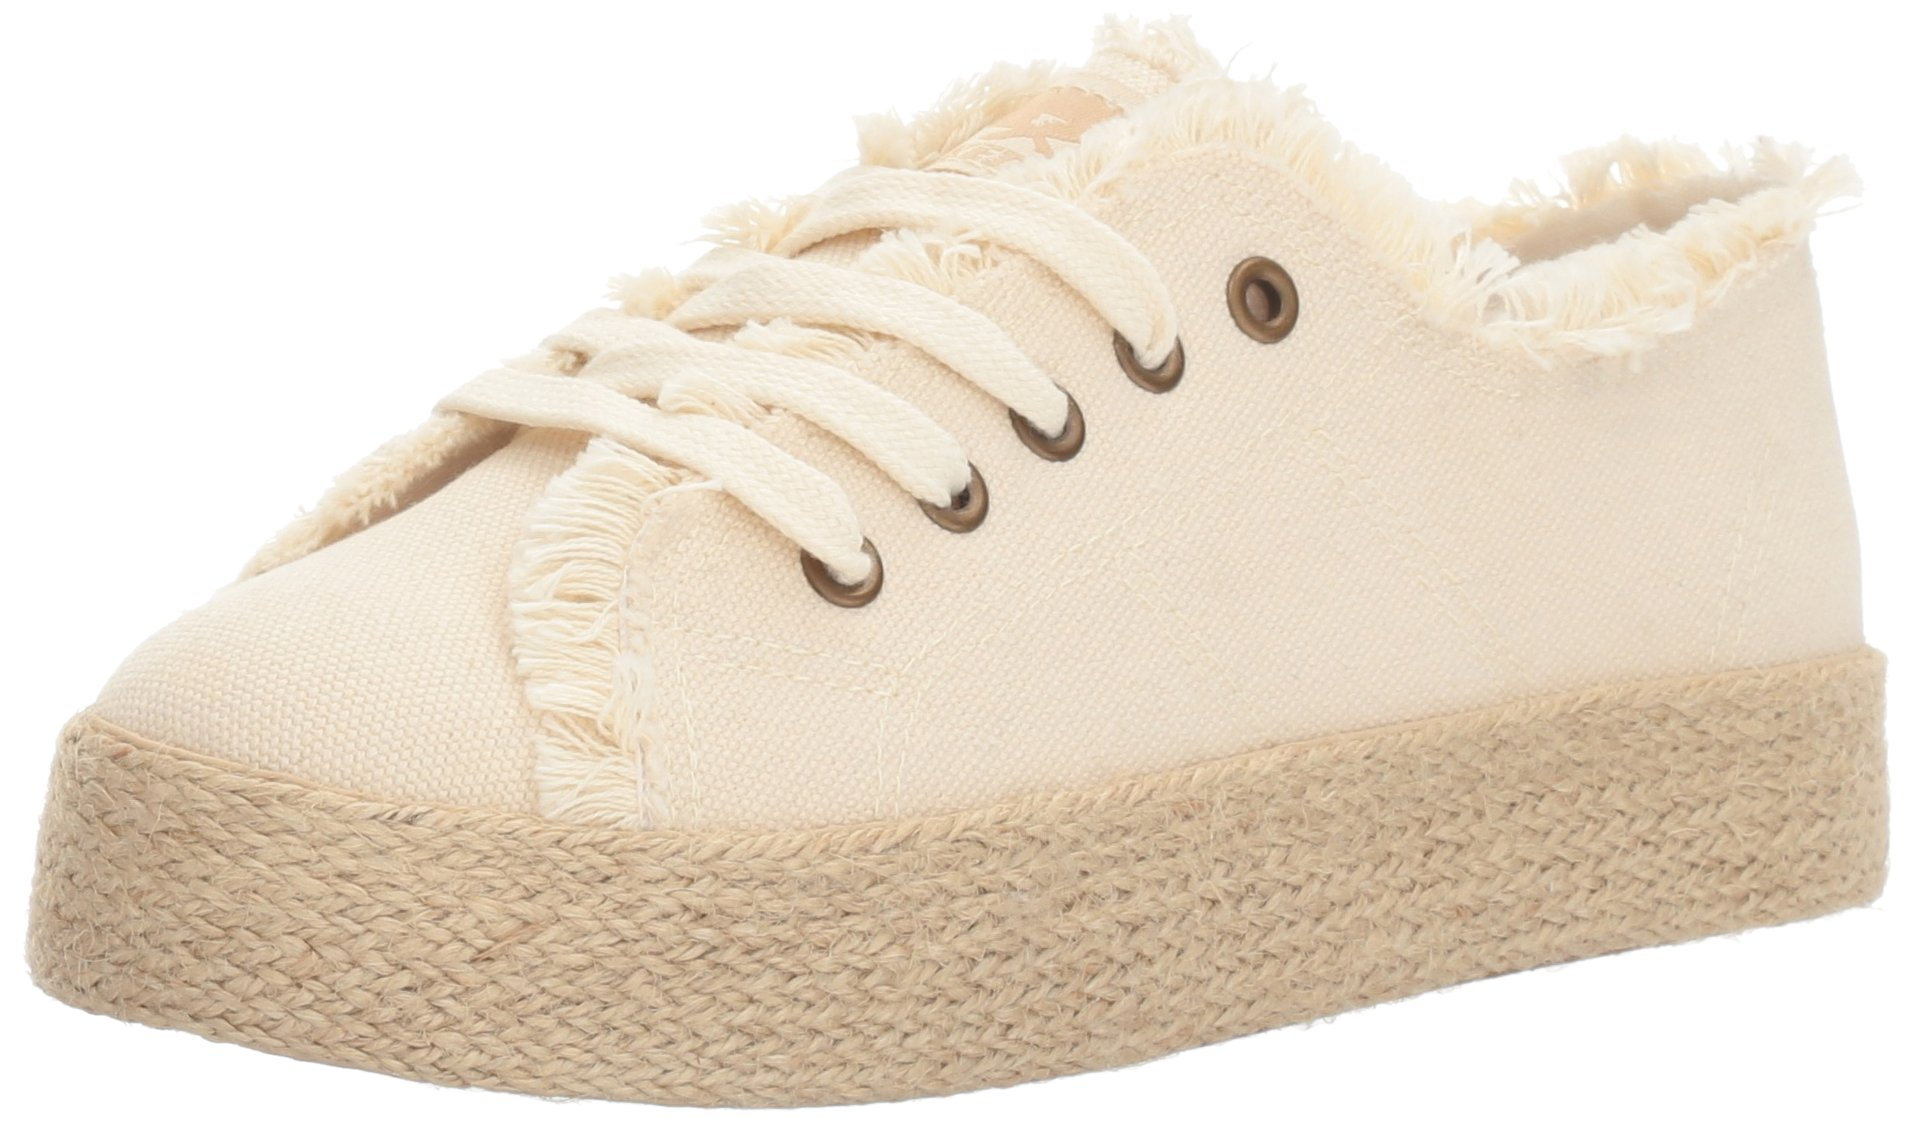 Rocket Dog Women's Madox Orchard Canvas Cotton Fashion Sneaker, Natural, 11 M US